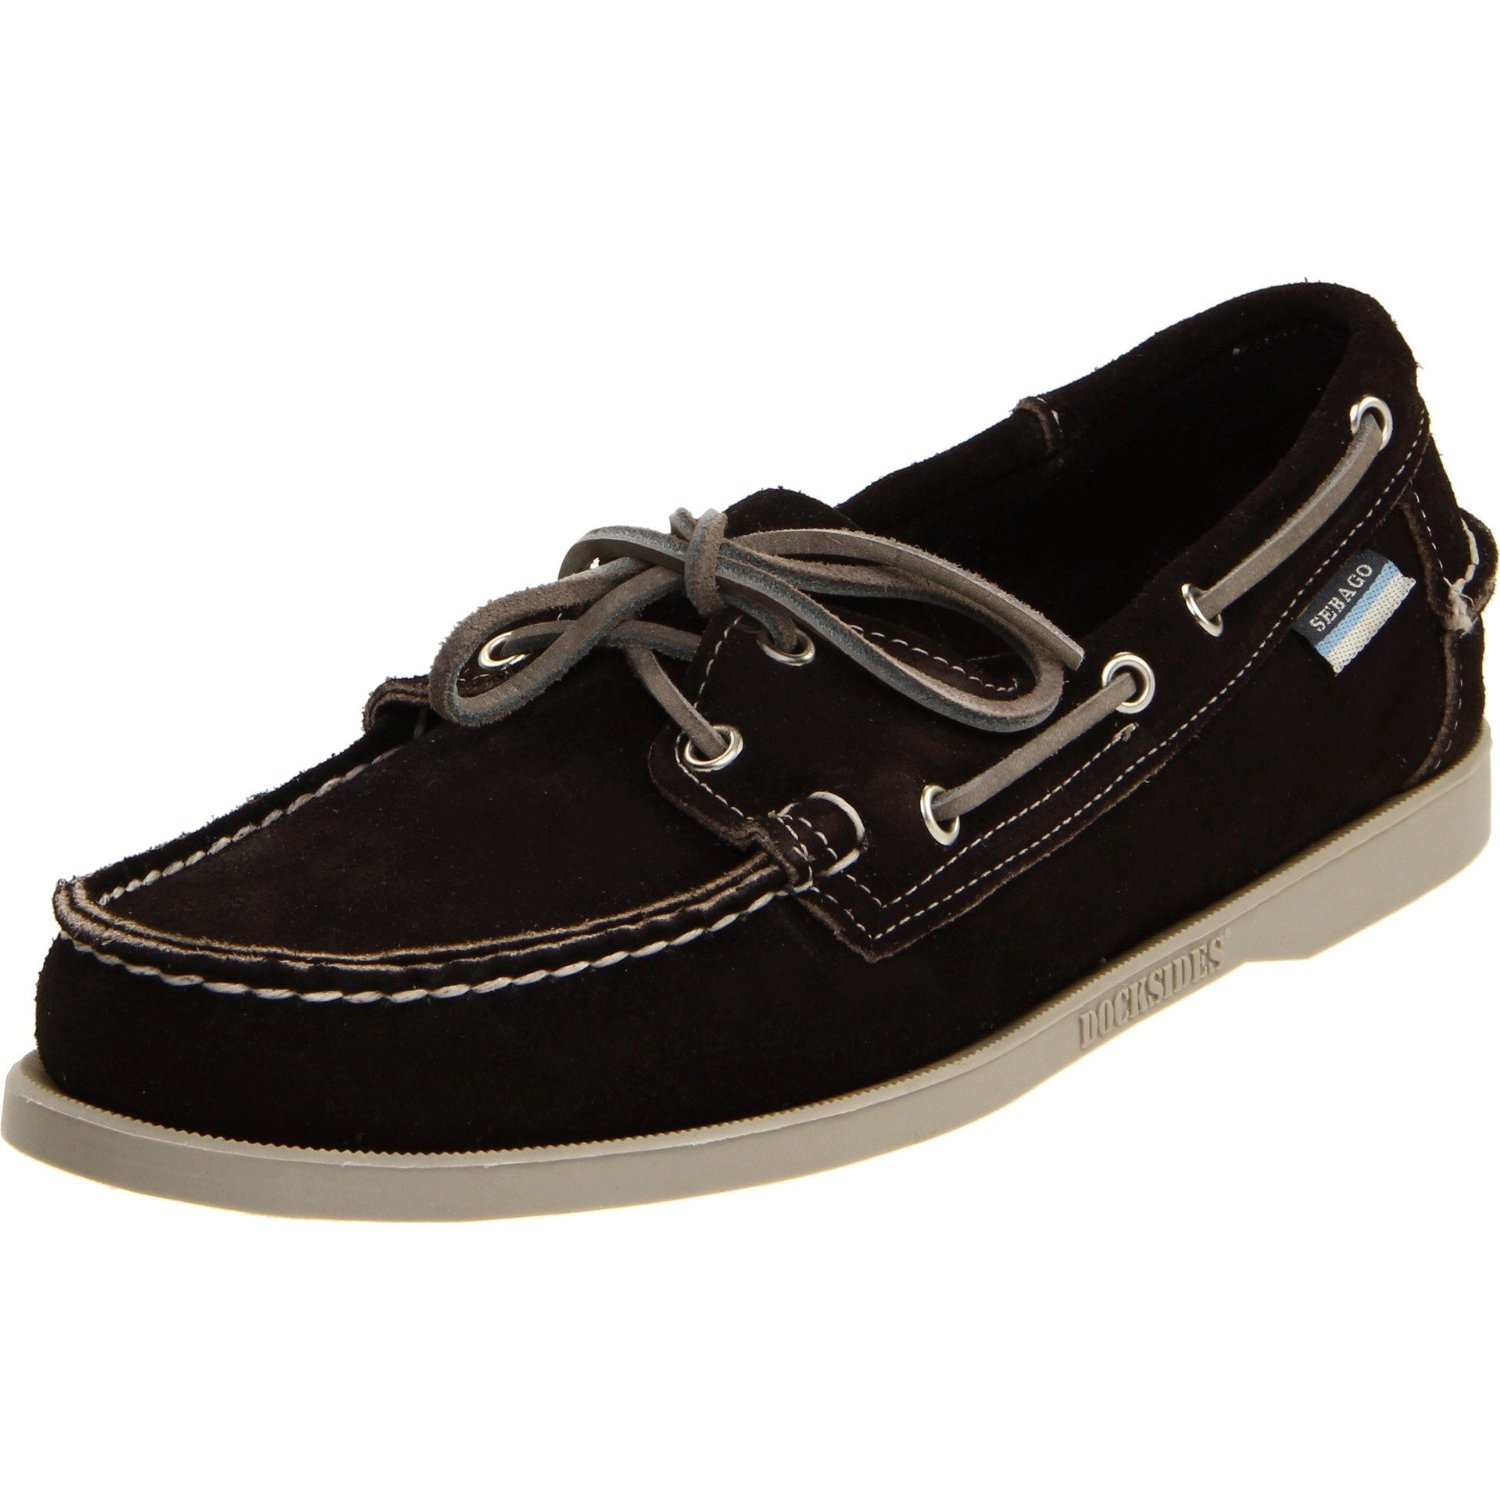 All Black Timberland Boat Shoes